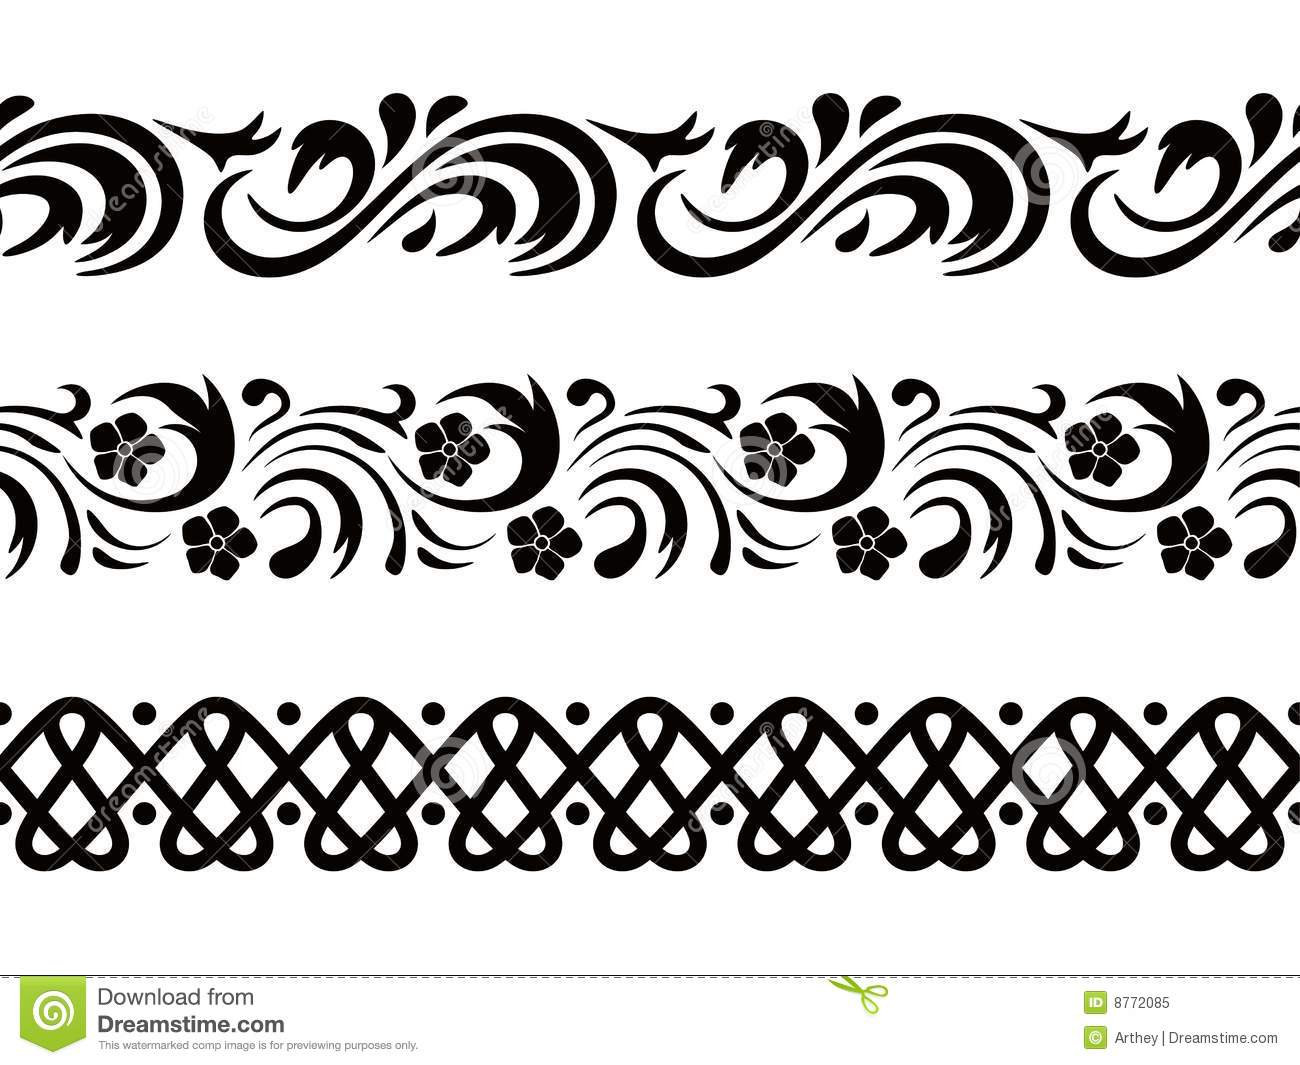 16 vector seamless pattern border images vector swirls border victorian style borders vectors for Border vectors